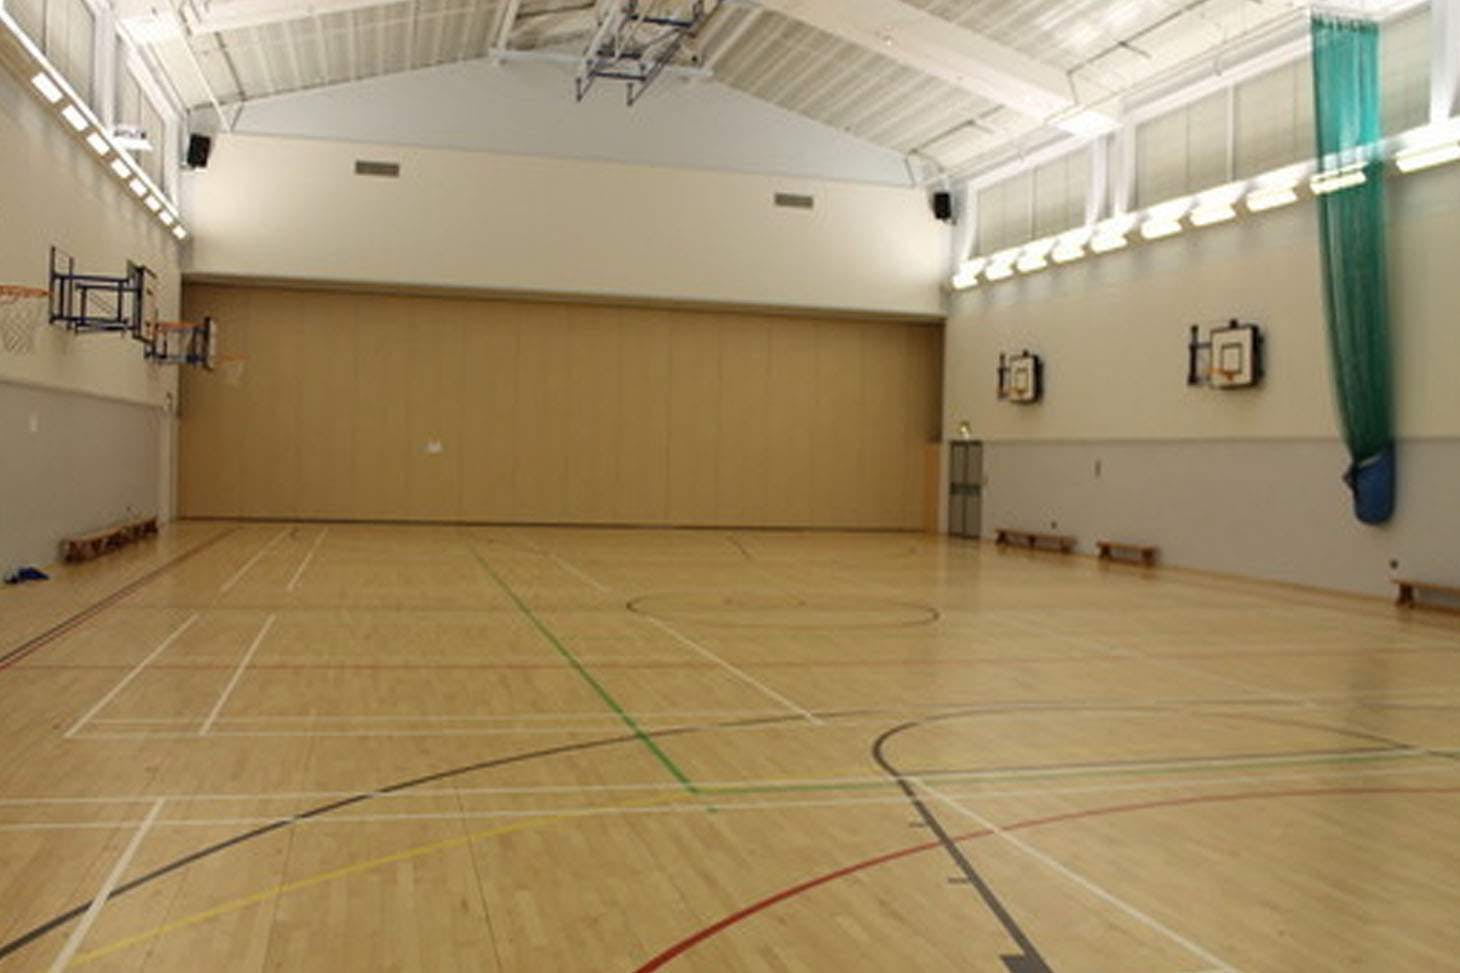 Whitburn C of E Academy Nets | Sports hall cricket facilities